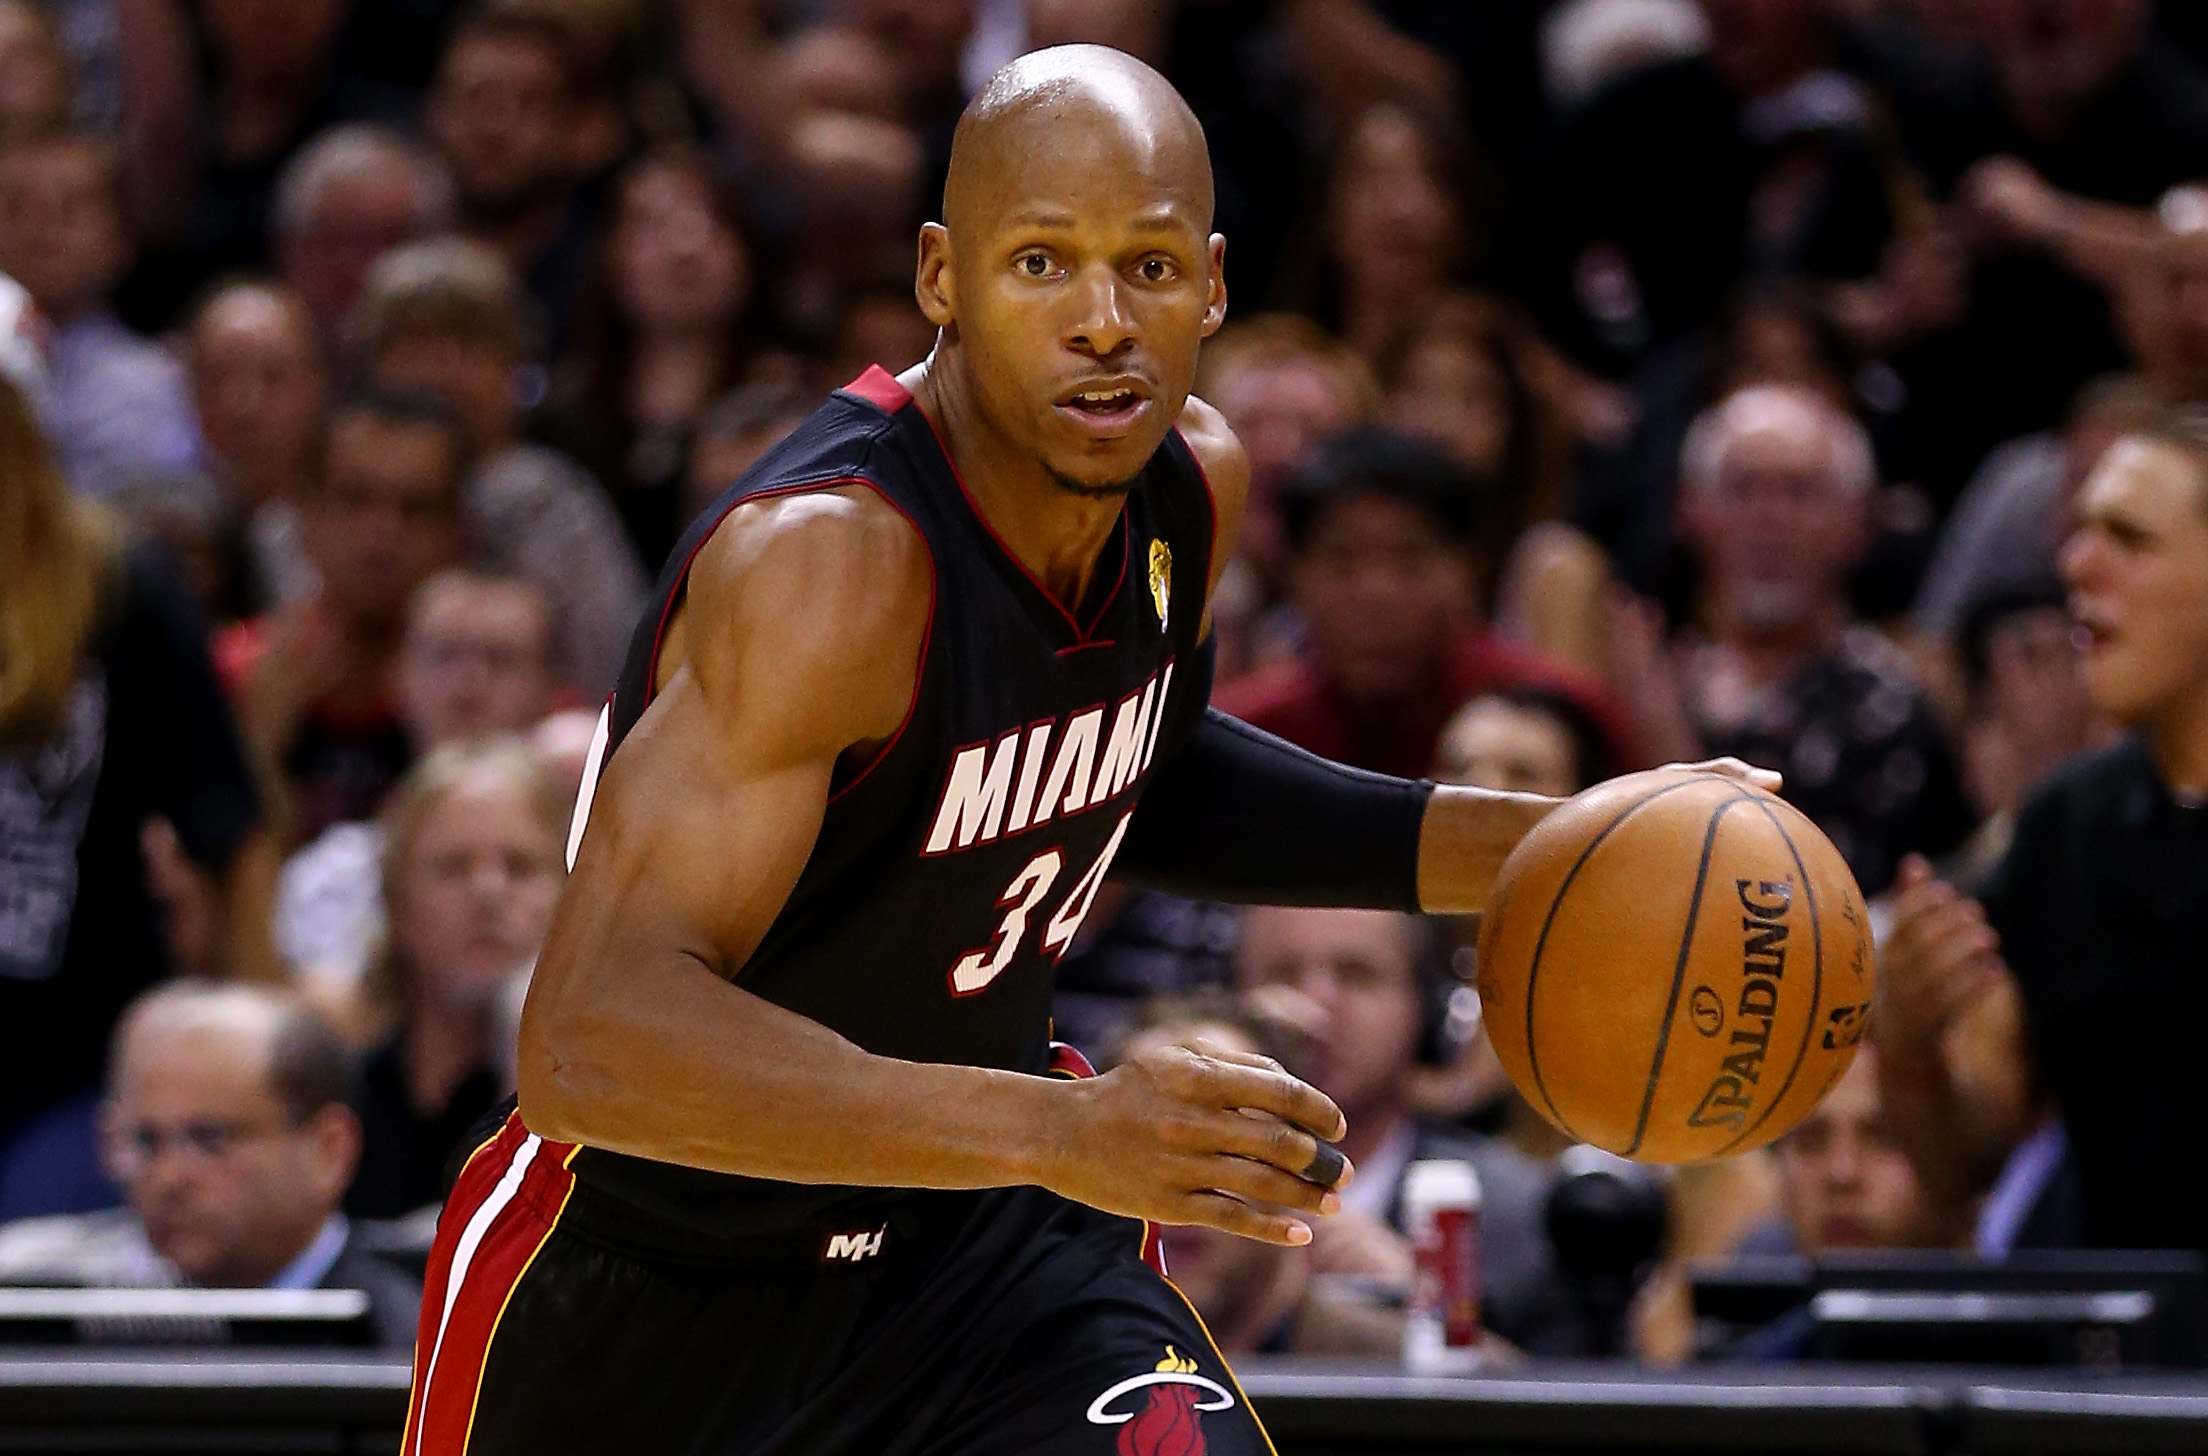 Ray Allen says he will not play this NBA season